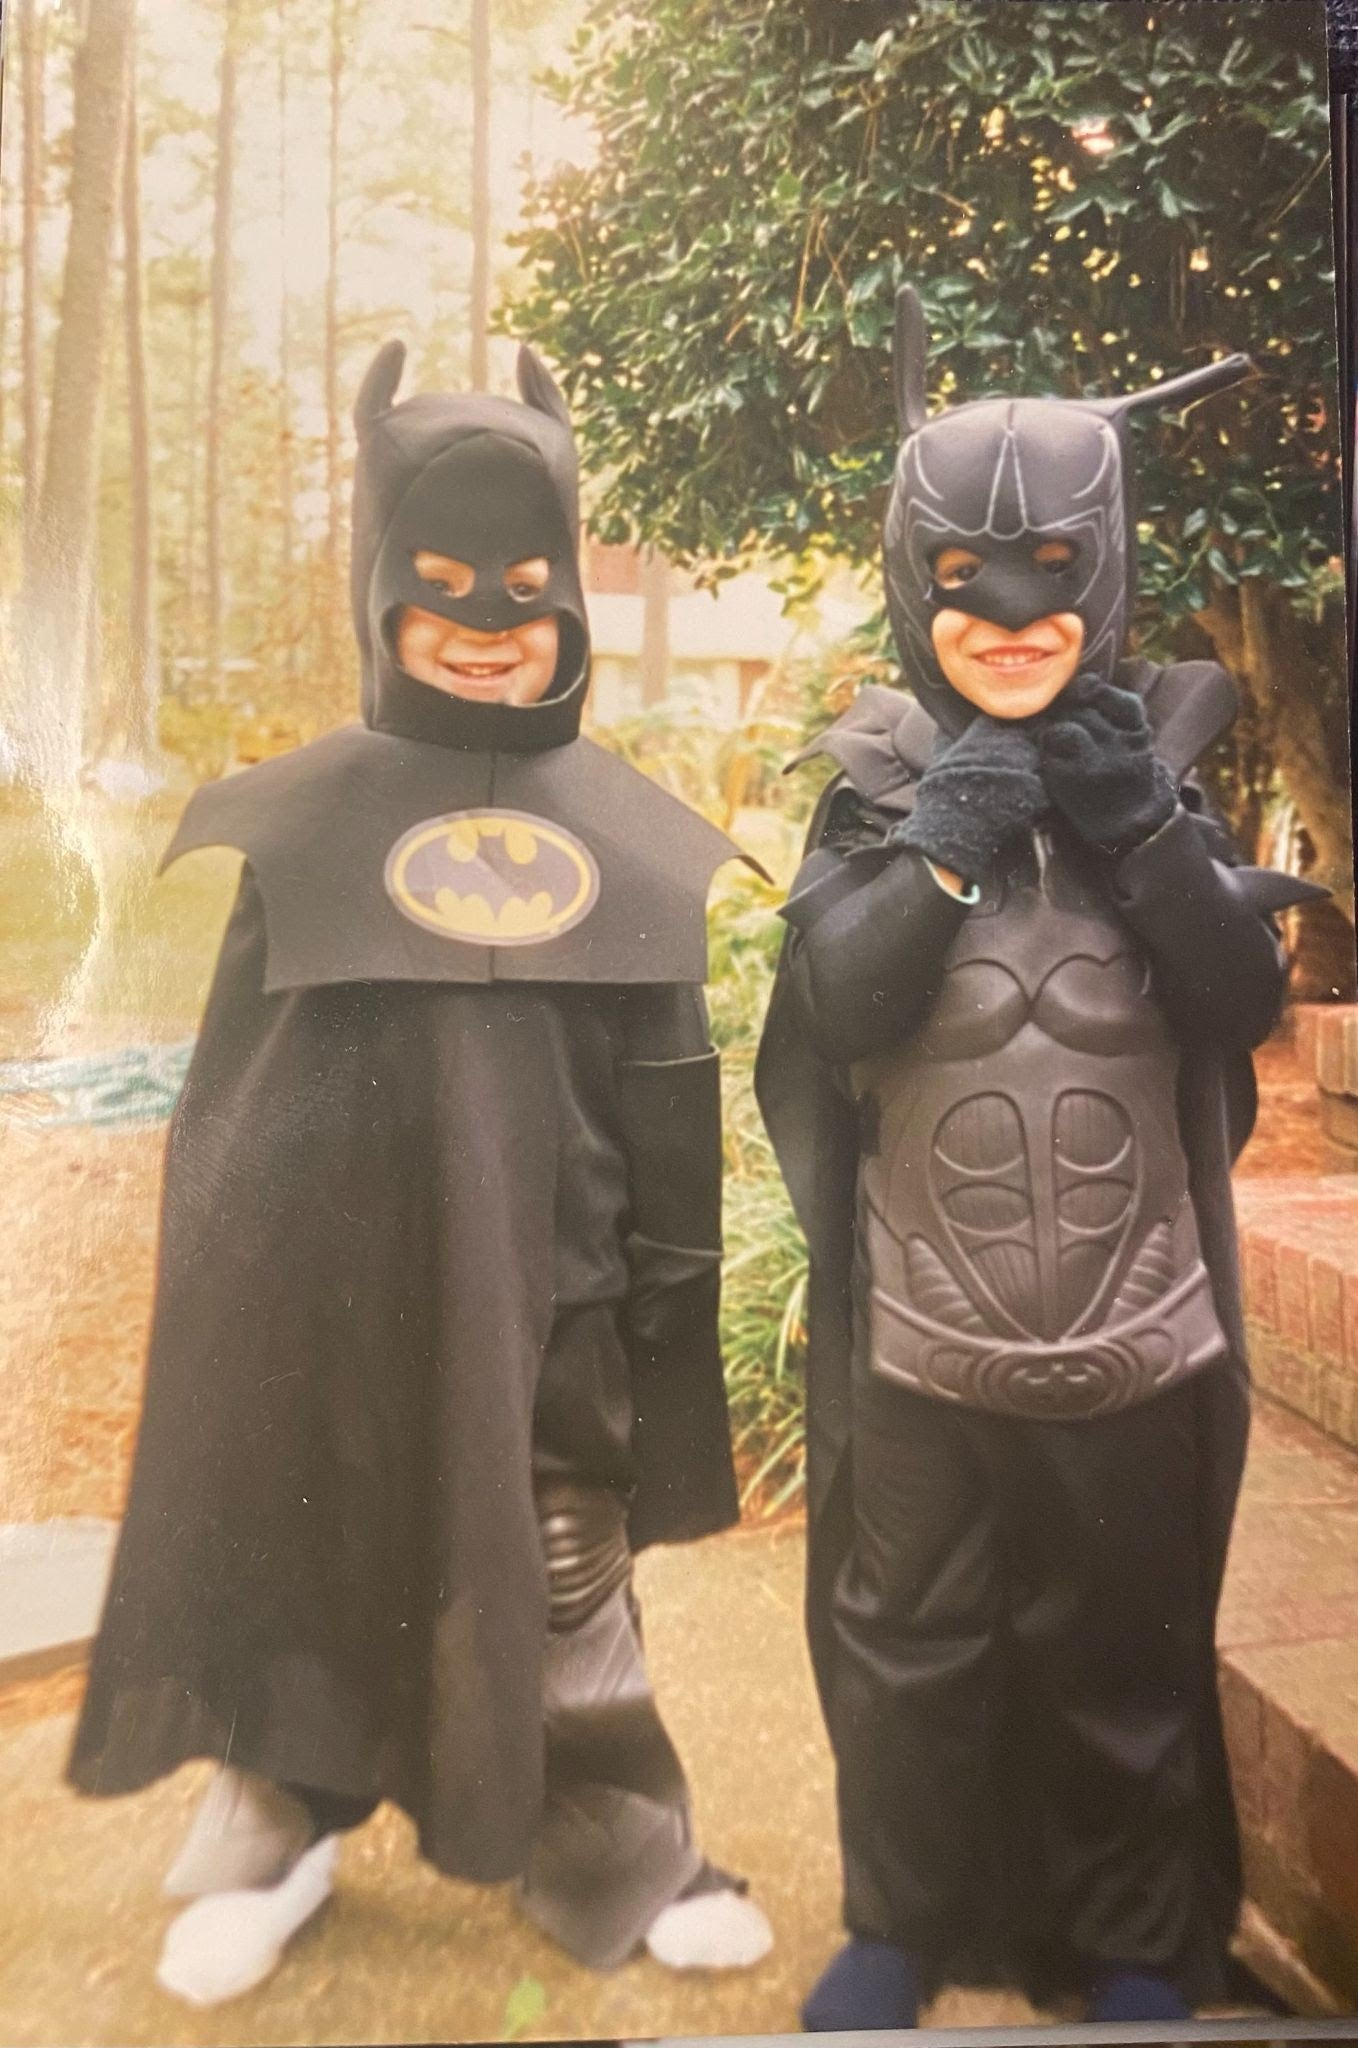 Two kids dressed up as Batman, with masks and capes